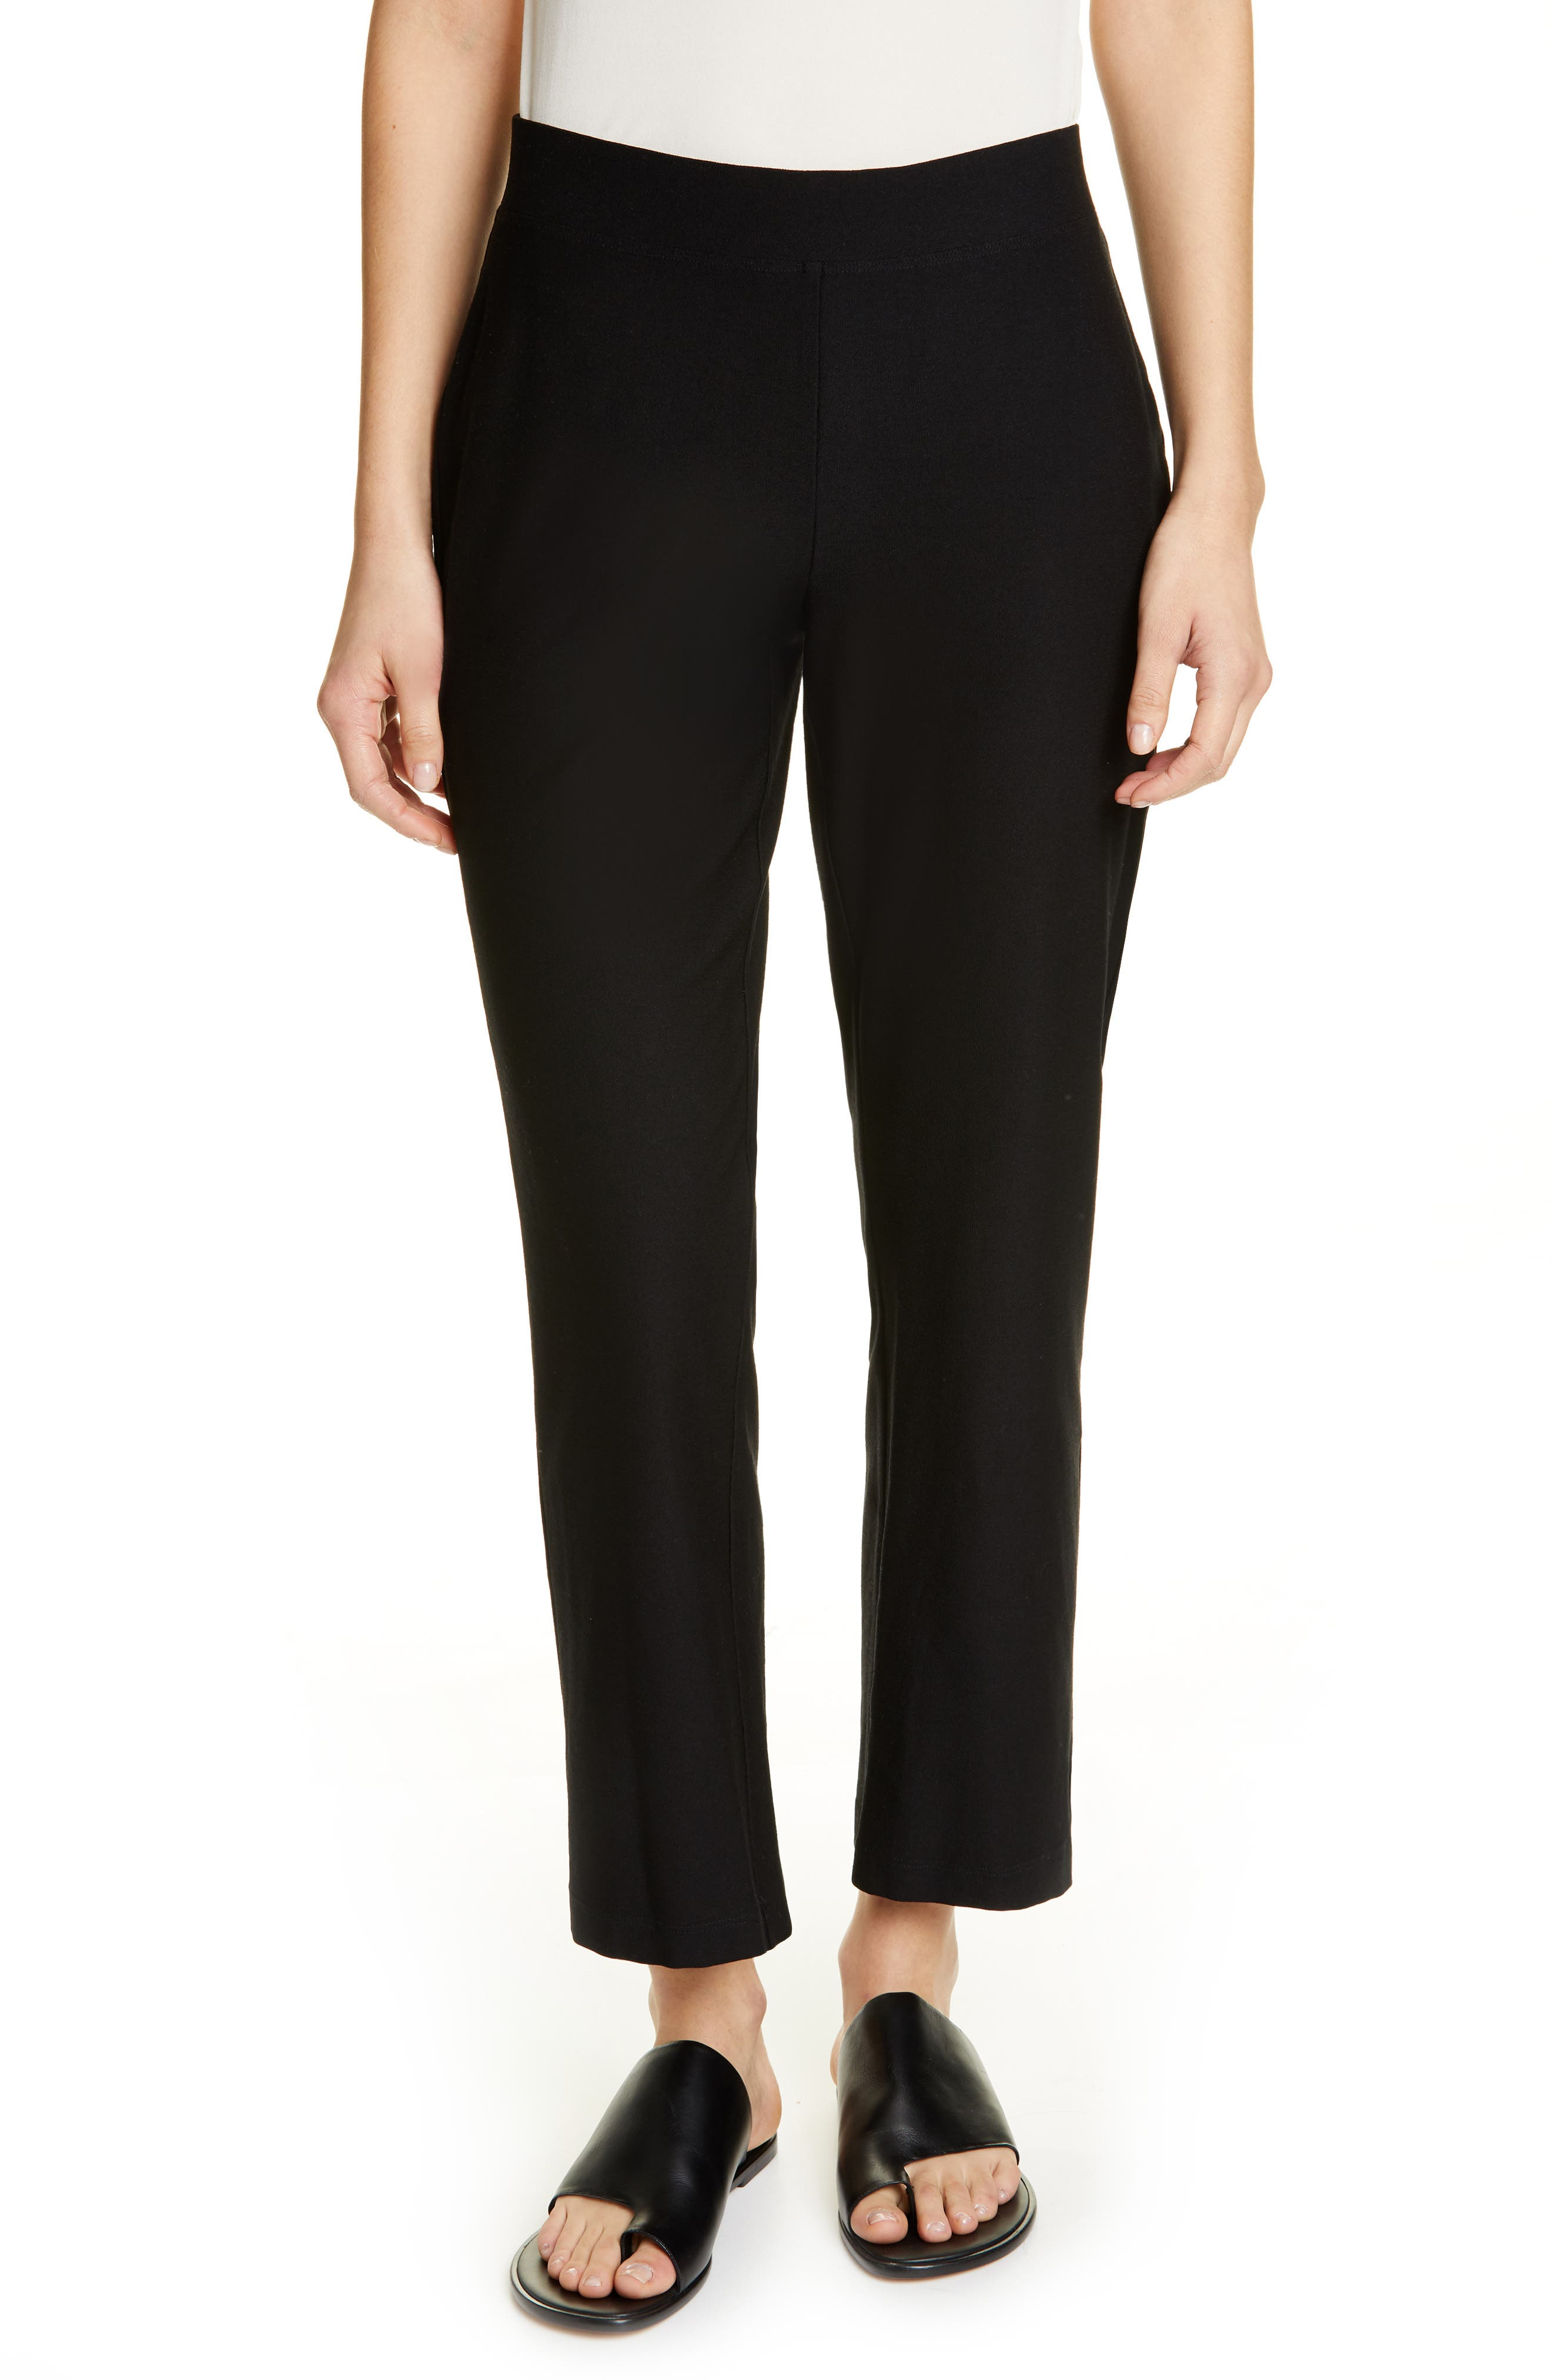 Petite Eileen Fisher Flare Ankle Pants, Black